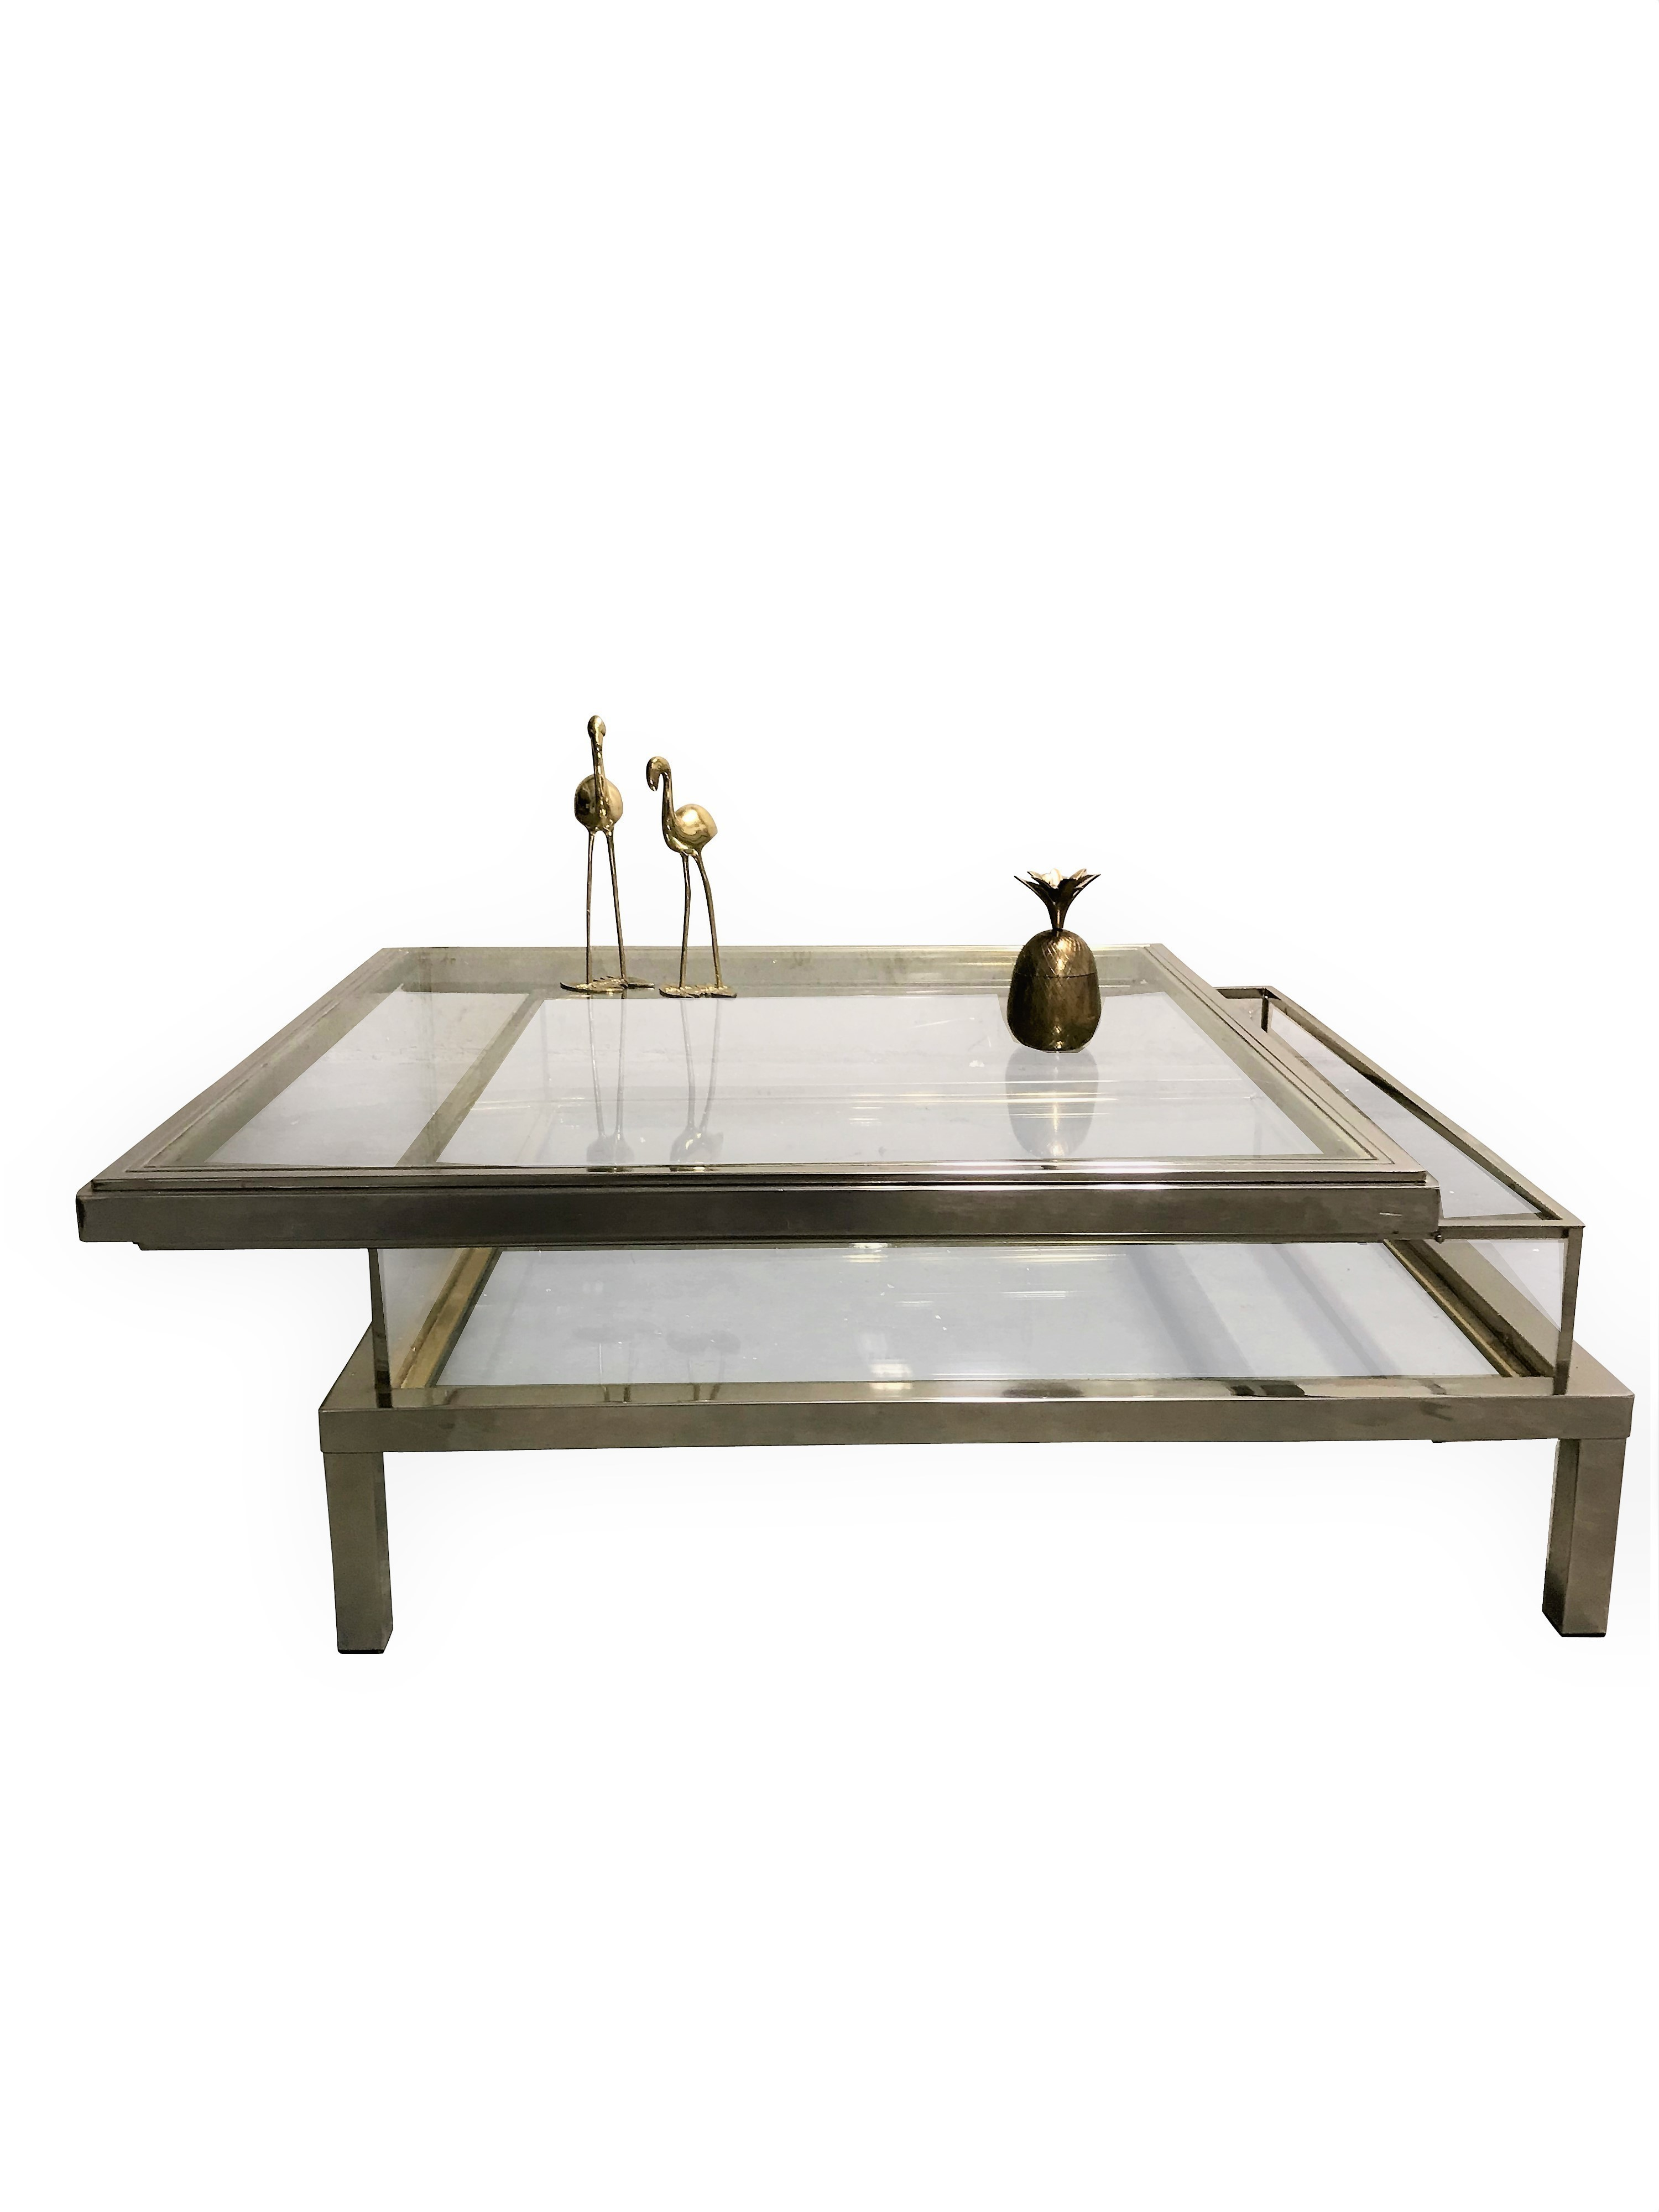 Vintage Sliding Top Coffee Table By Maison Jansen 1970s Unknown